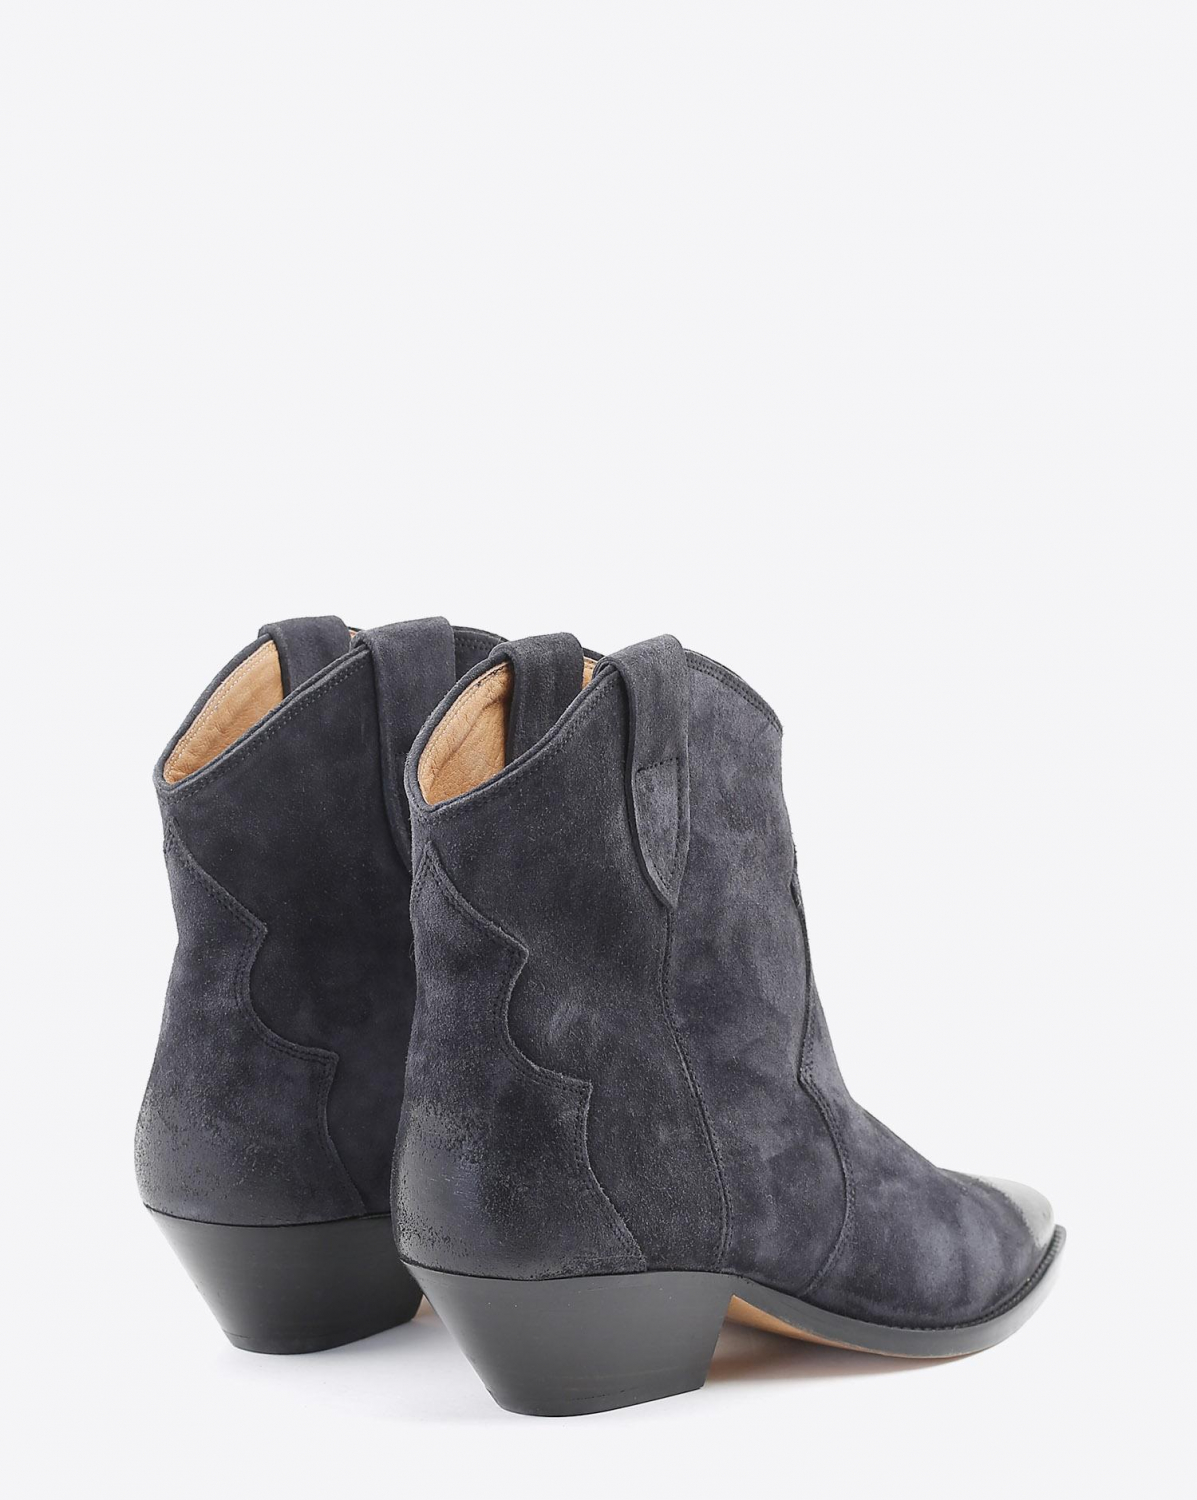 Isabel Marant Chaussures Boots DEWINA - Faded Black